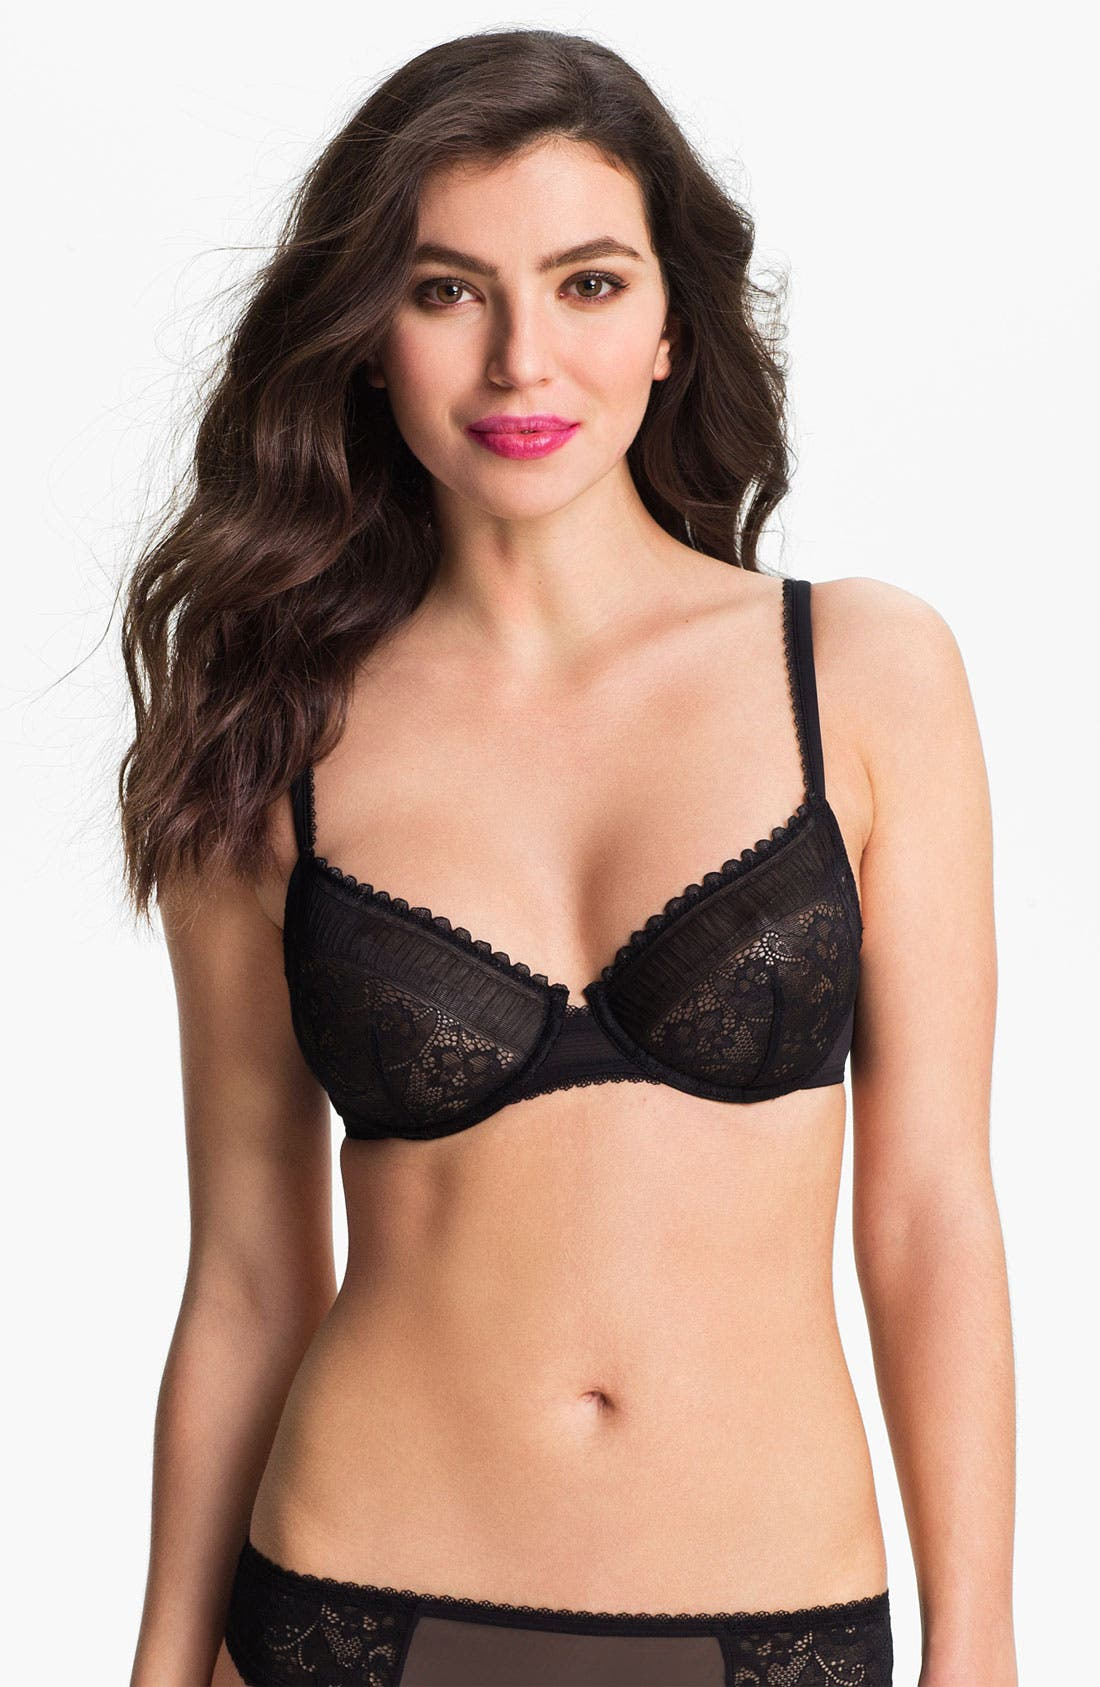 Alternate Image 1 Selected - La Perla 'Looking for Love' Underwire Bra